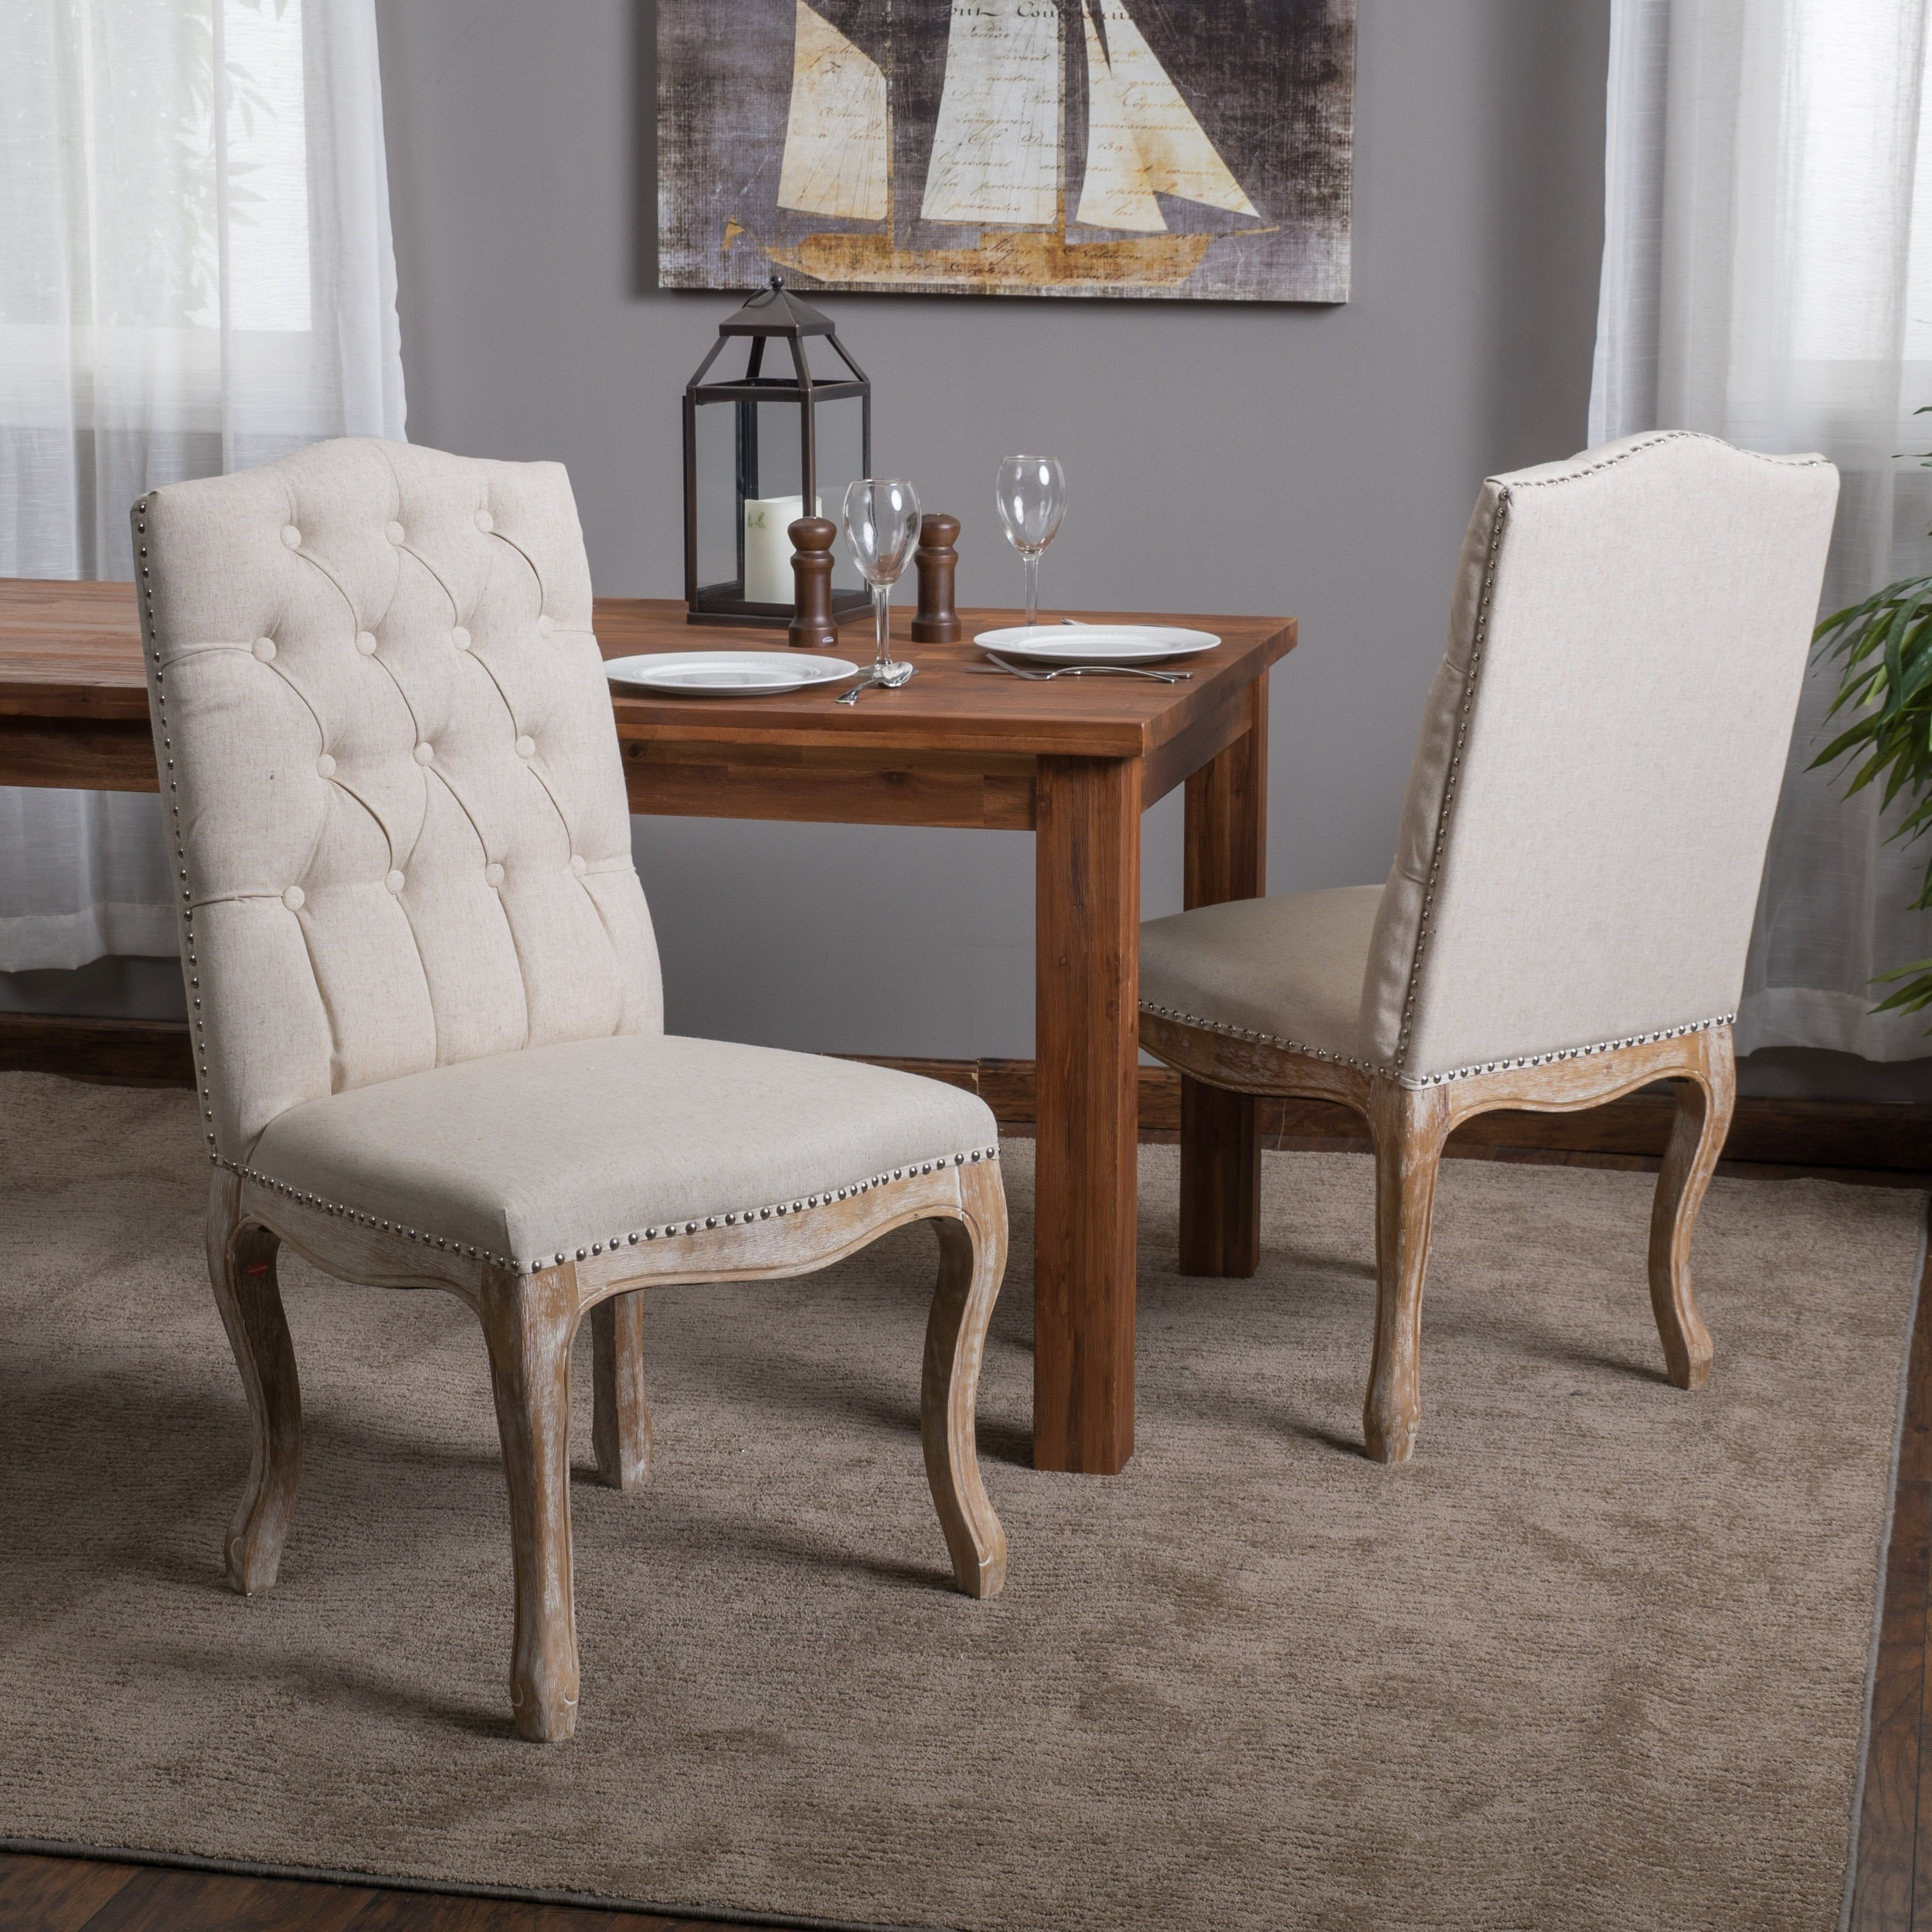 Weathered hardwood studded beige dining chair by christopher knight home set of 2